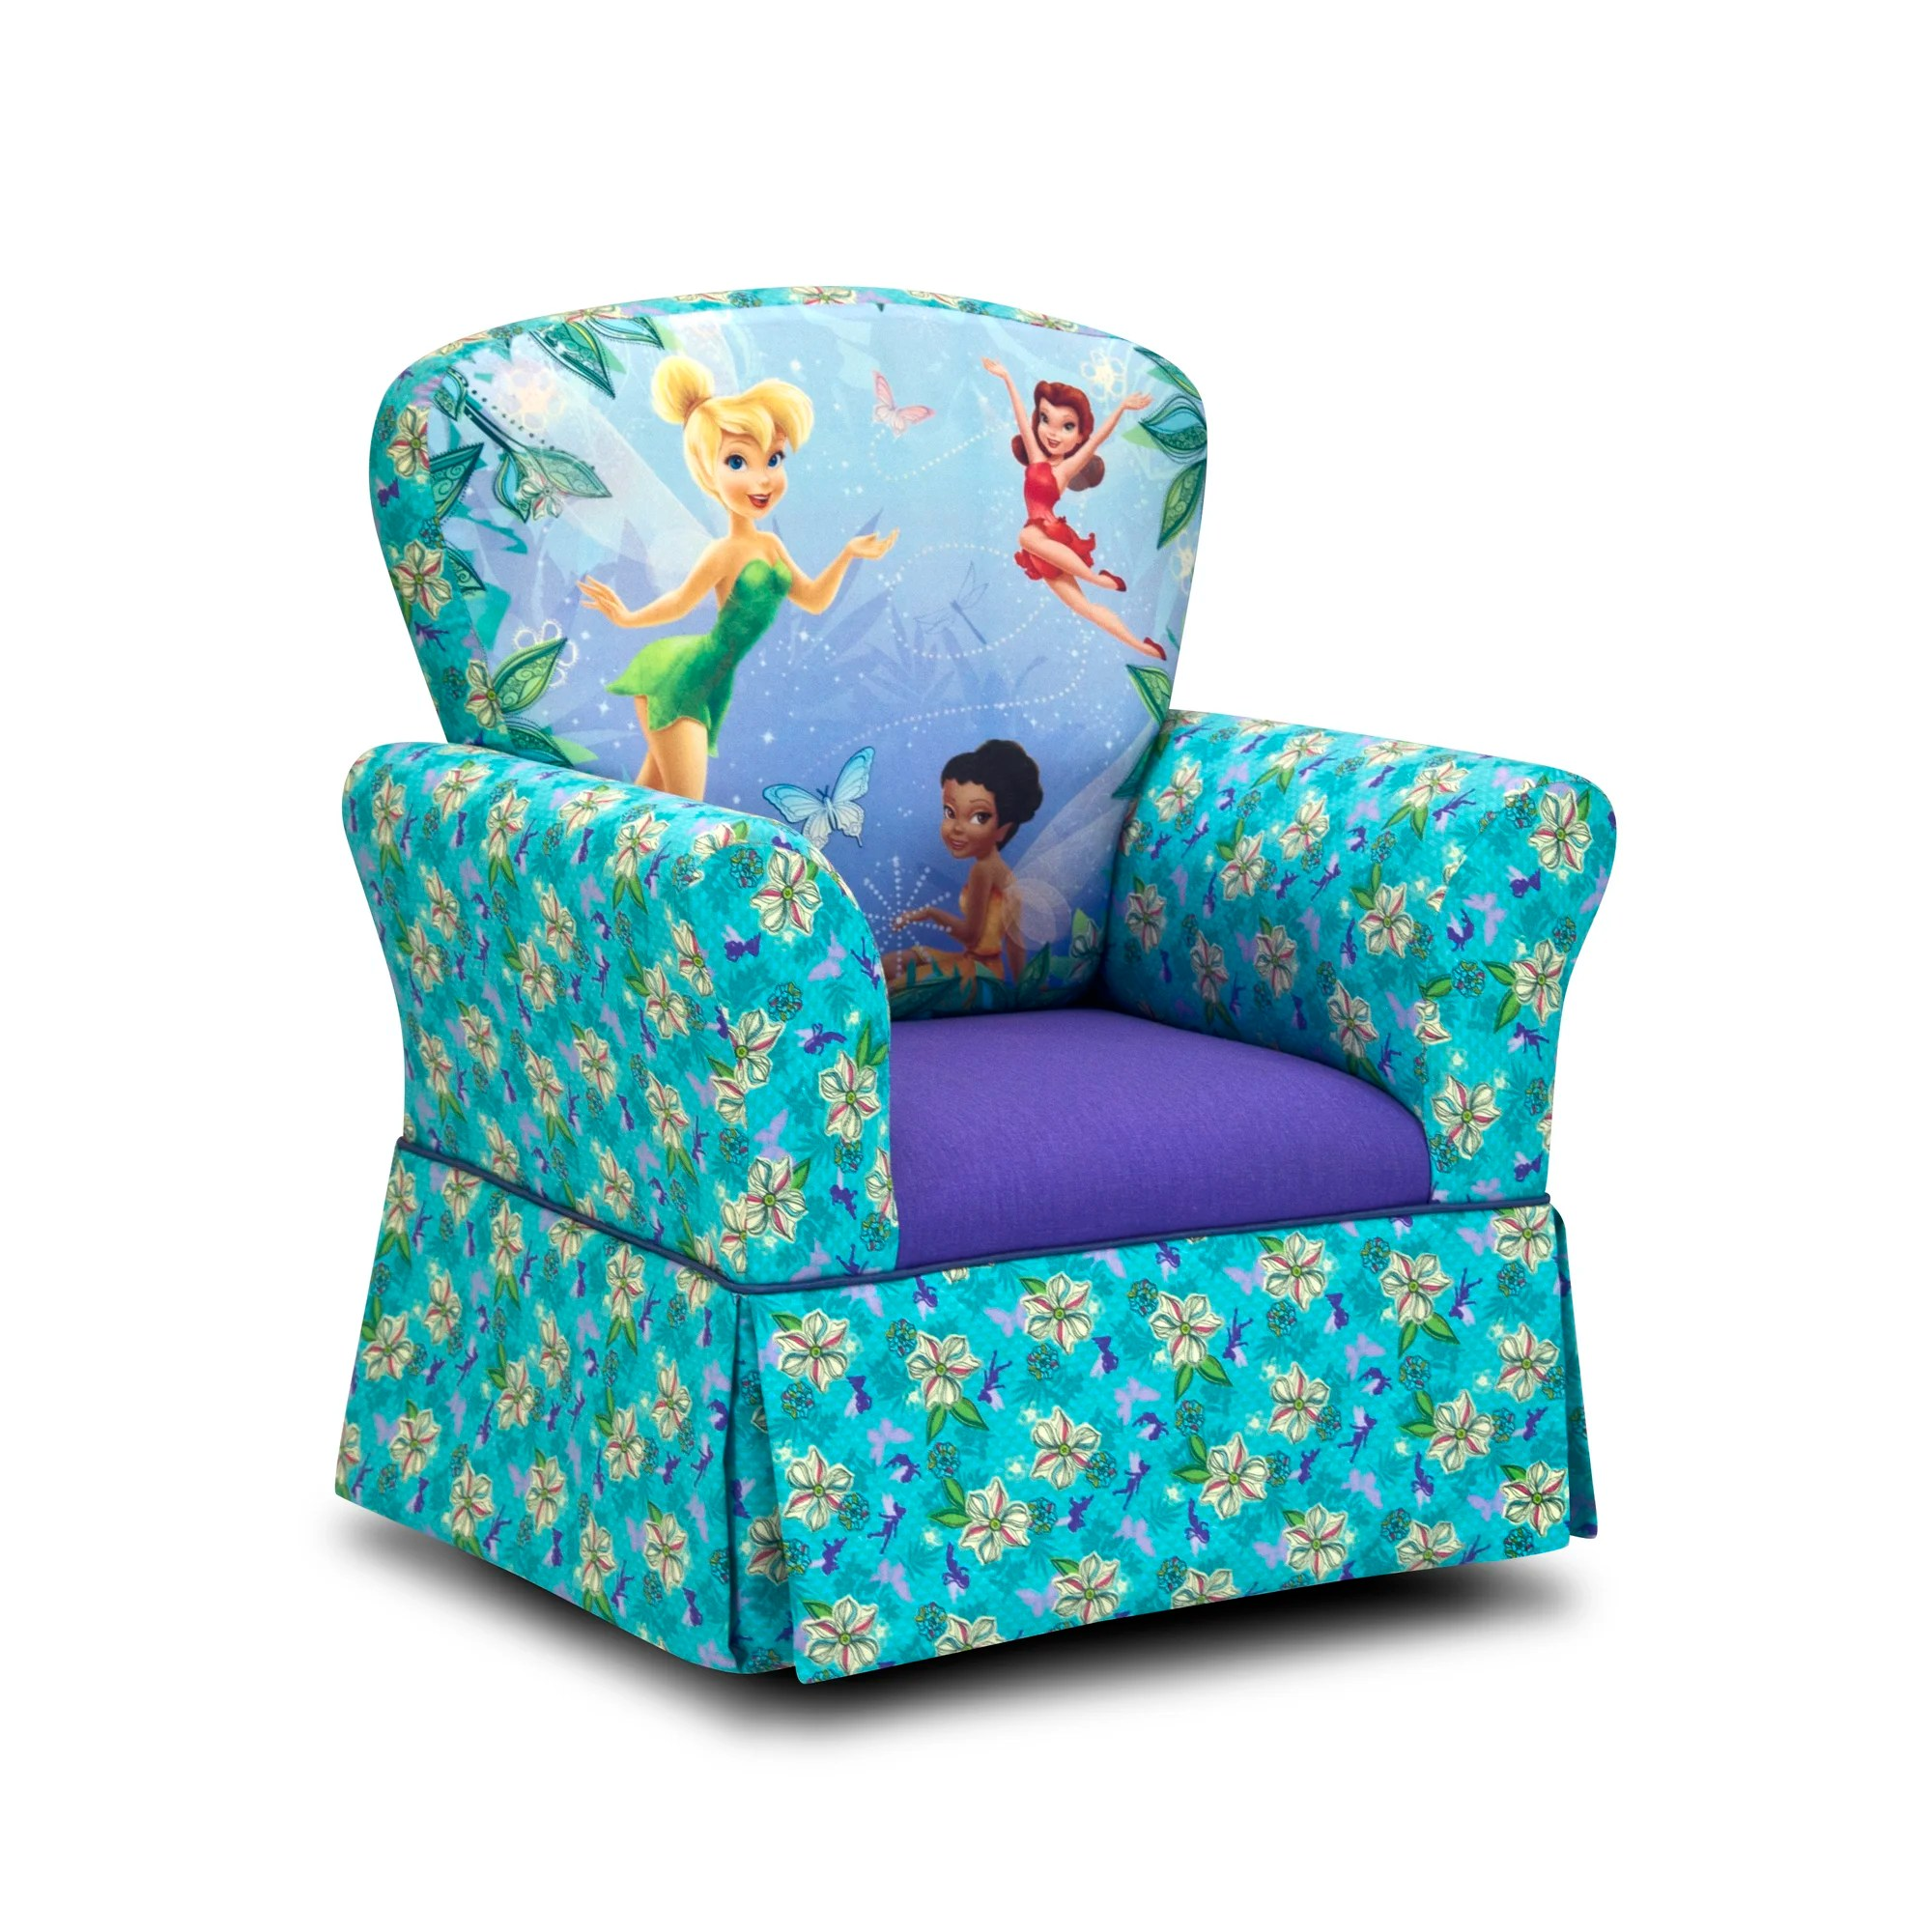 KidzWorld Disneys Kids Rocking Chair Amp Reviews Wayfair